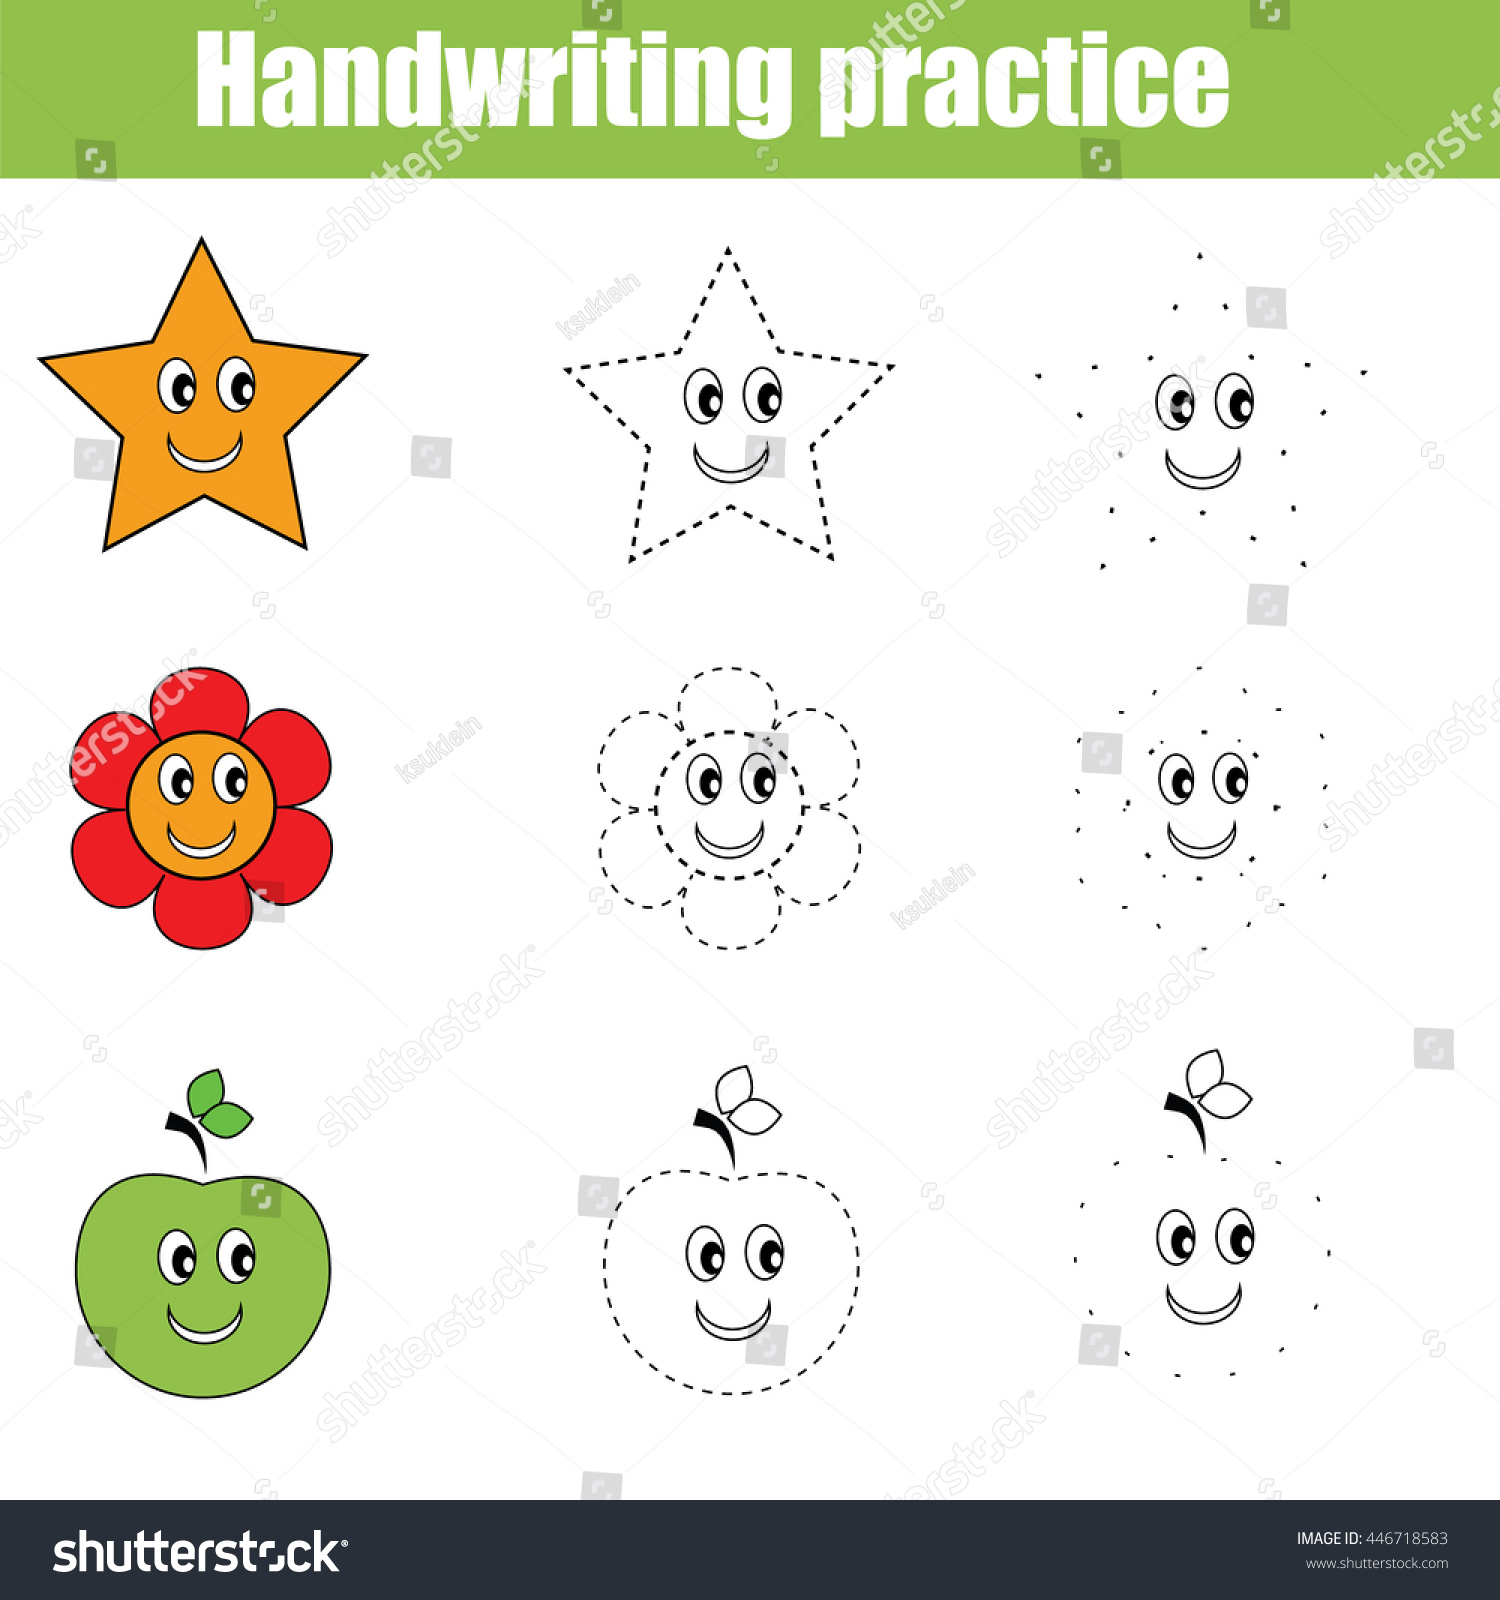 Worksheet Handwriting Worksheet Maker For Kindergarten Mikyu – Handwriting Worksheet Maker for Kindergarten